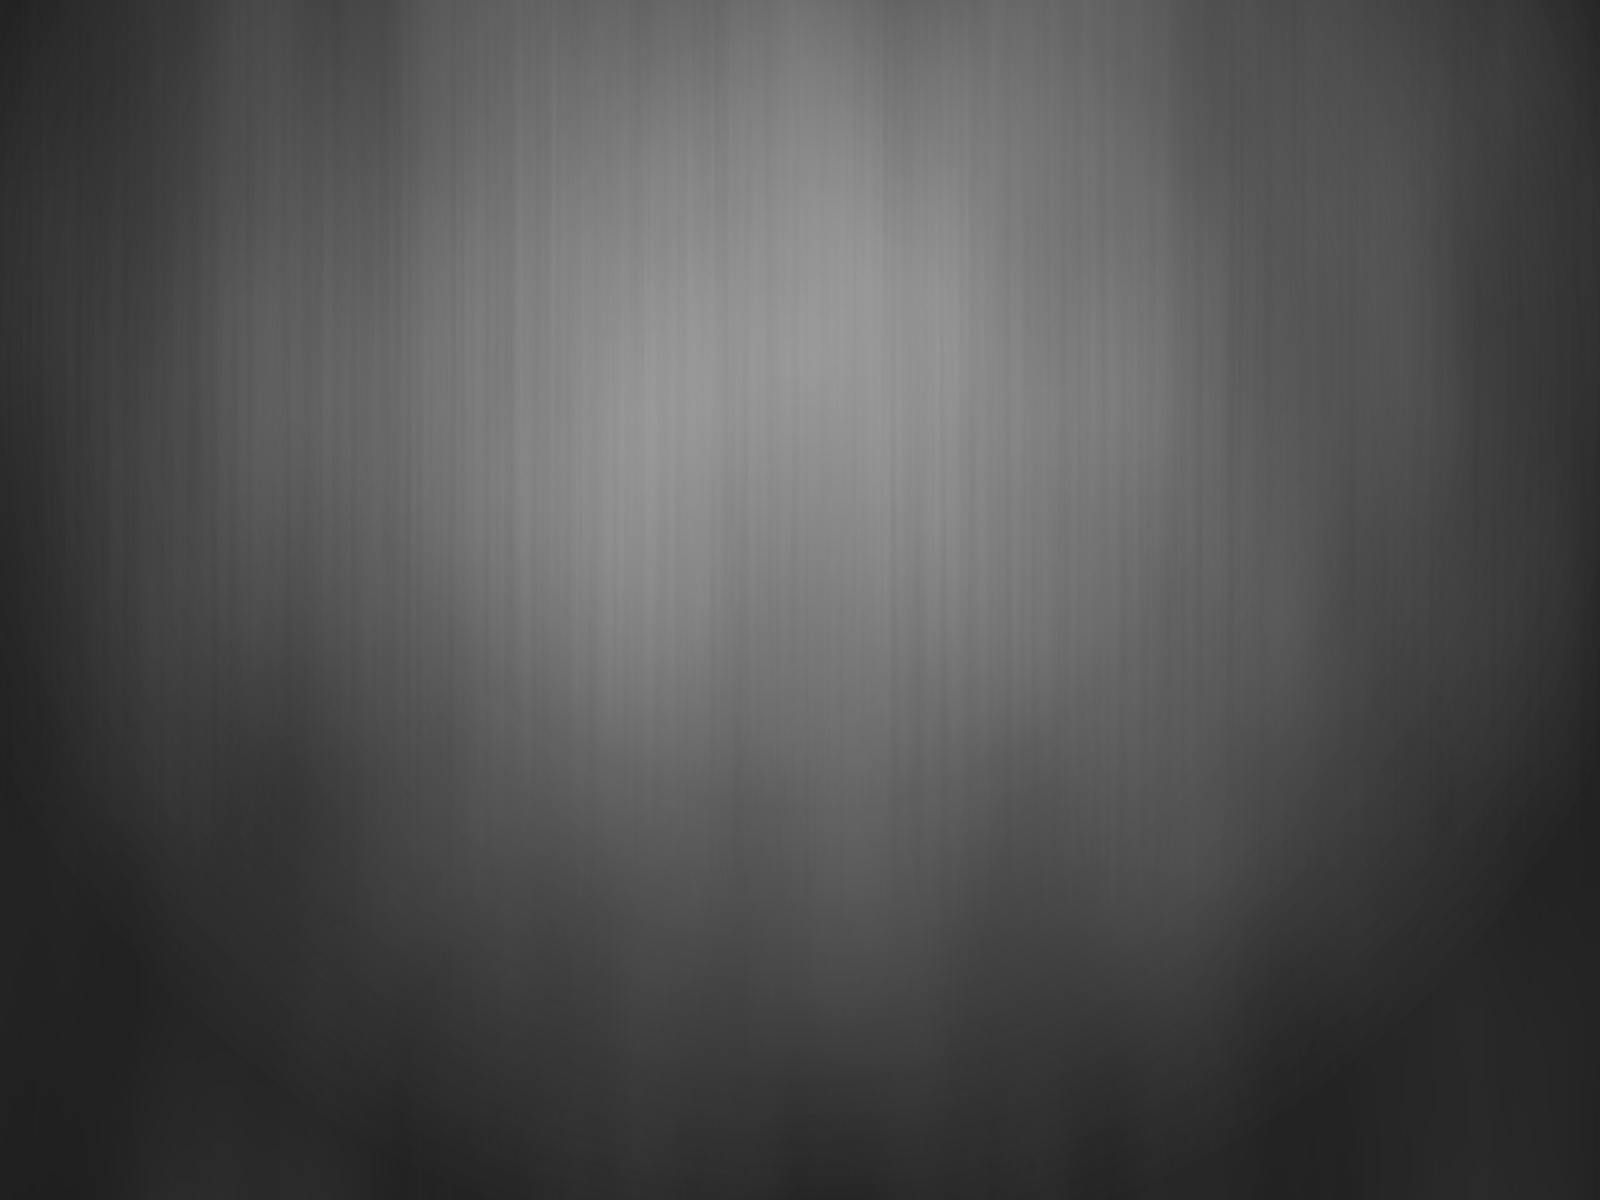 Gray Backgrounds-2